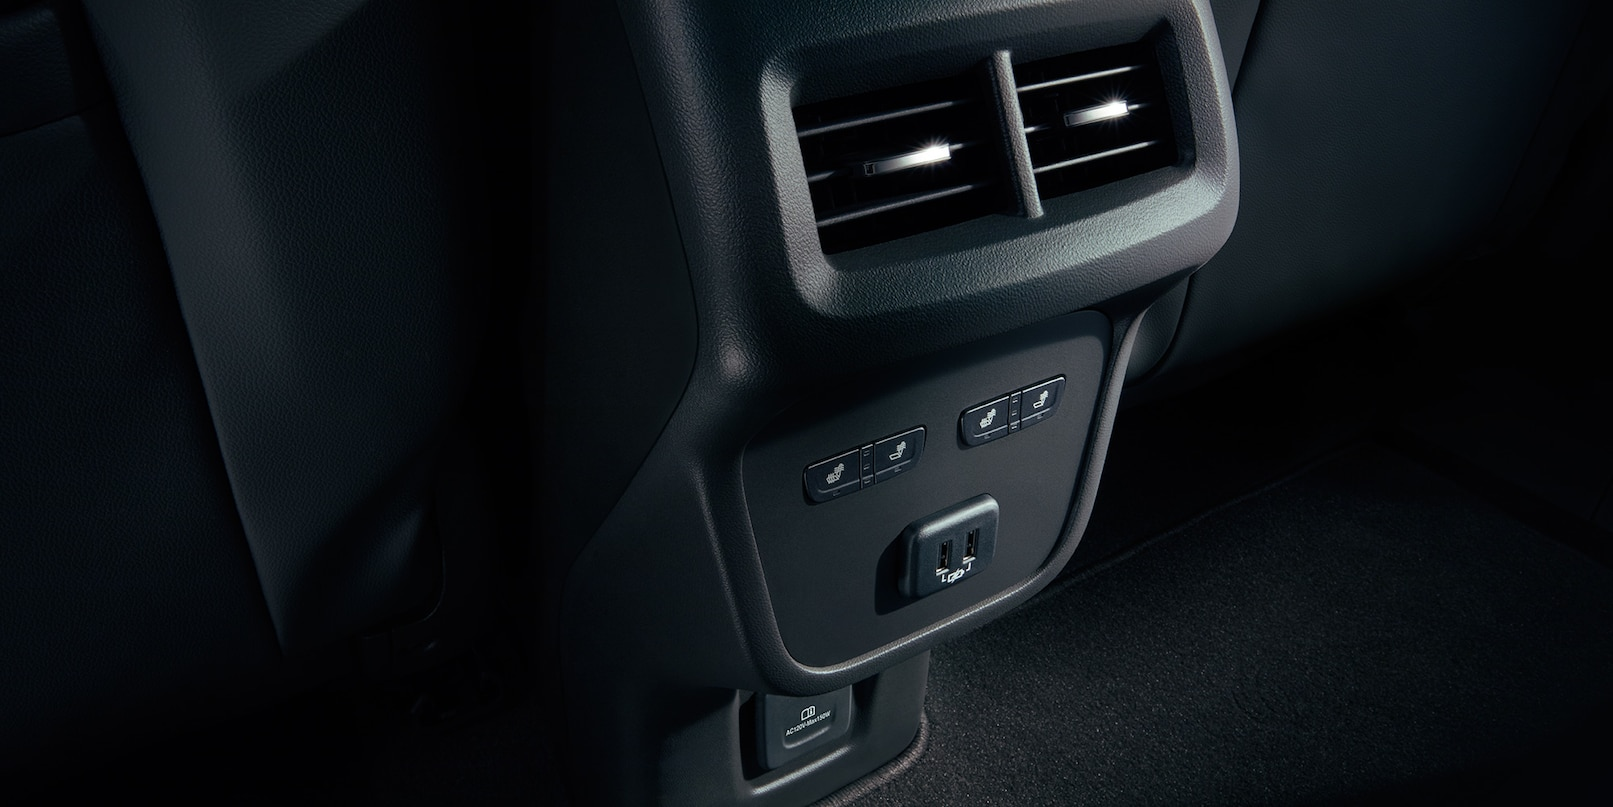 Climate Control in the 2019 Equinox